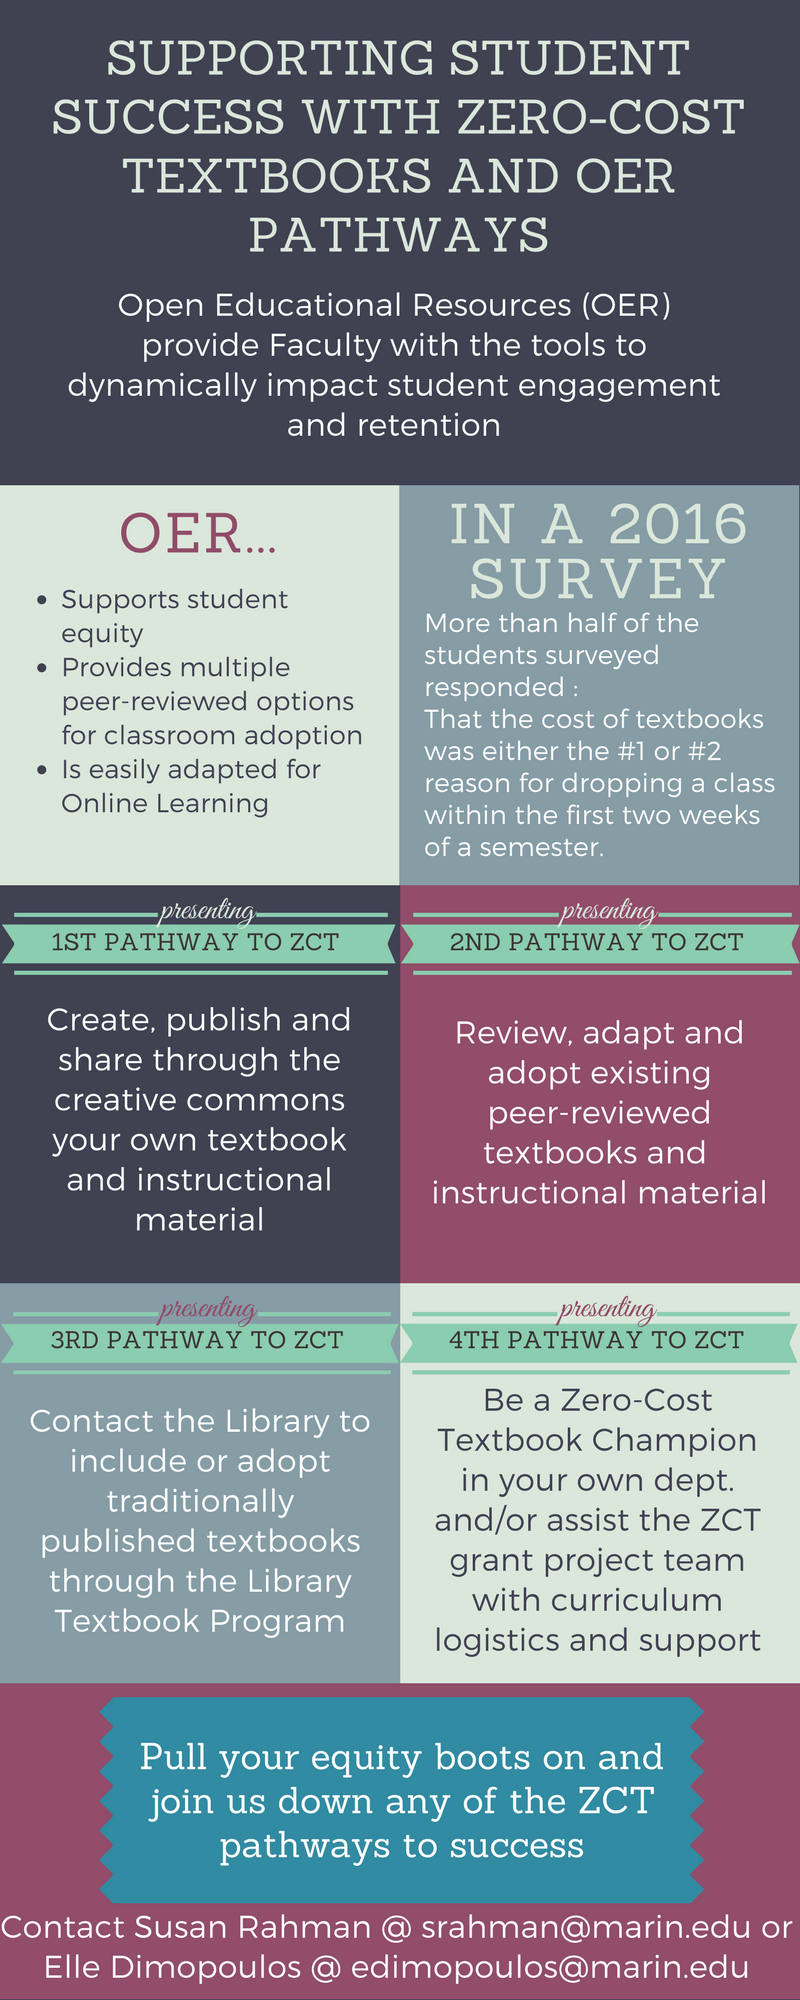 Zero Cost PAthways Infographic; contact edimopoulos@marin.edu for an accessible version